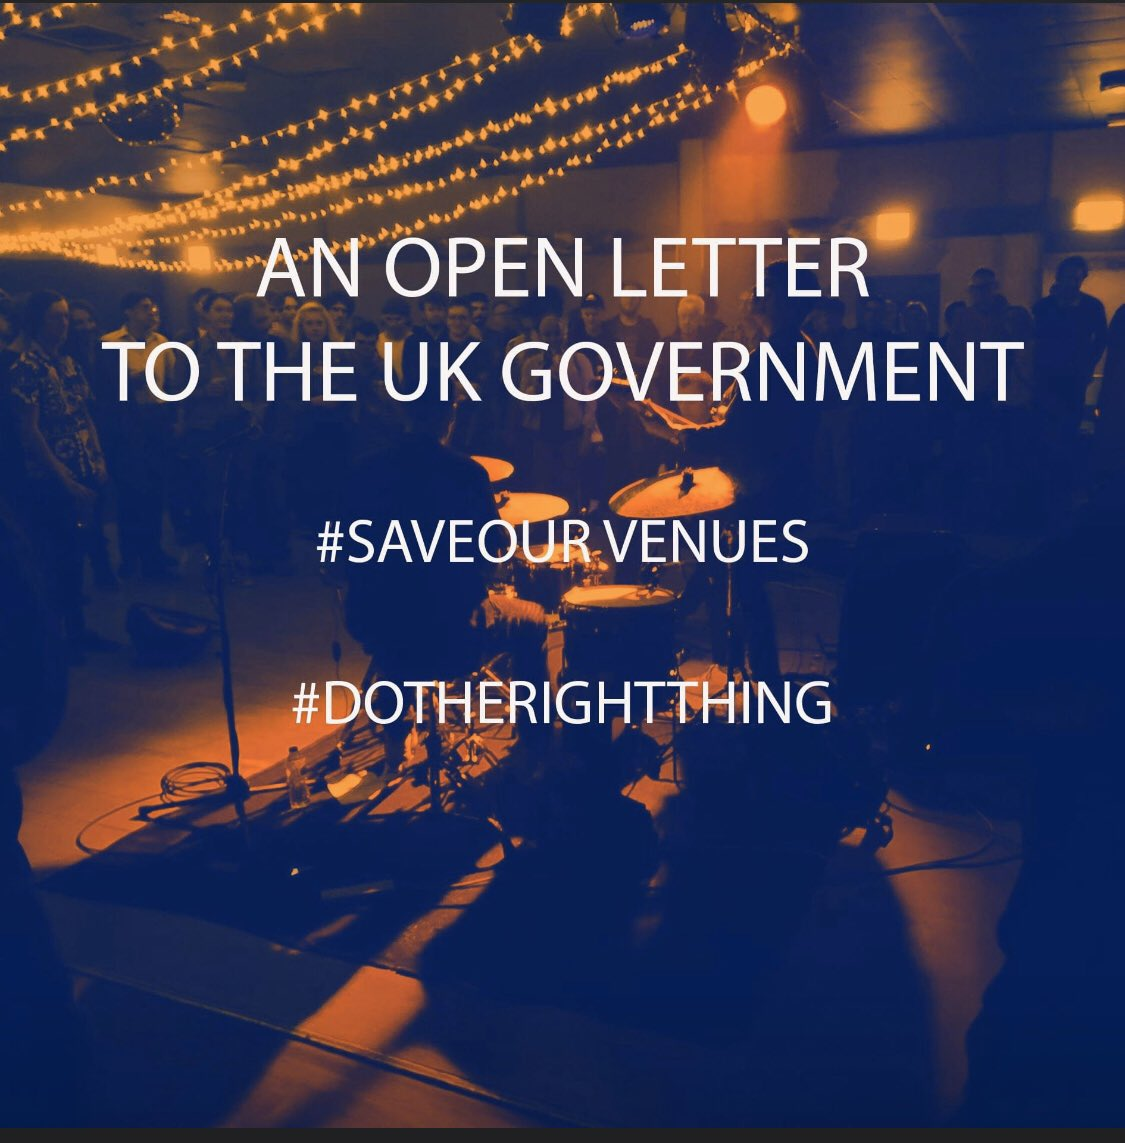 @WilliamJeavons @deansgatelabour please support the @musicvenuetrust Open Letter to the UK Government. ow.ly/WCtn50AflNl #saveourvenues #dotherightthing